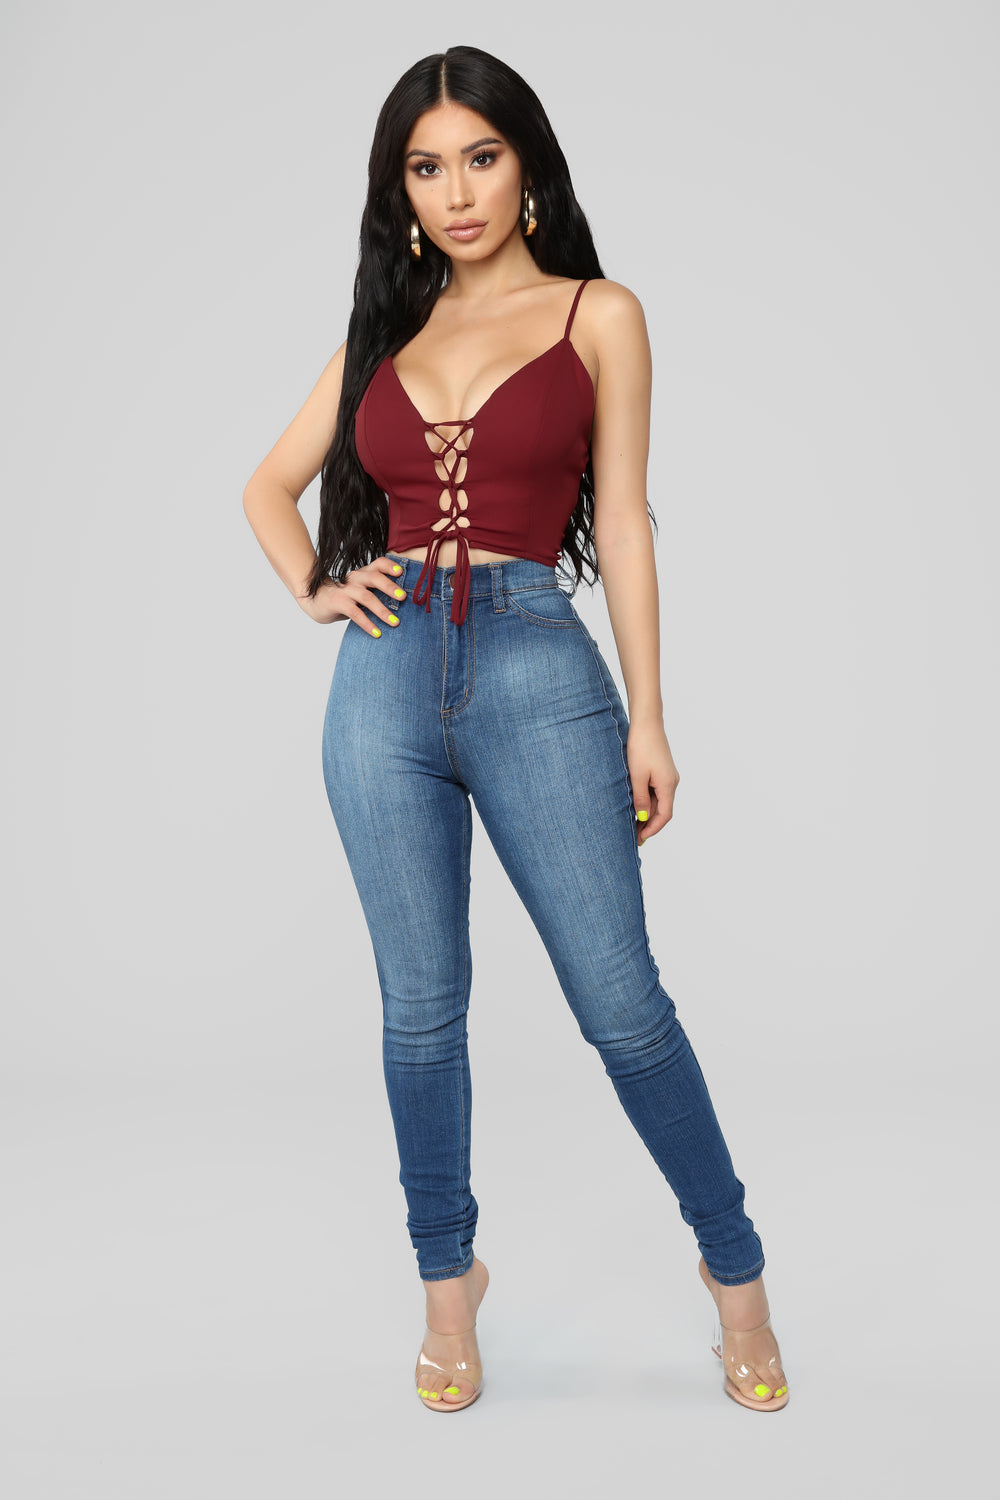 Robin Lace Up Crop Top - Wine